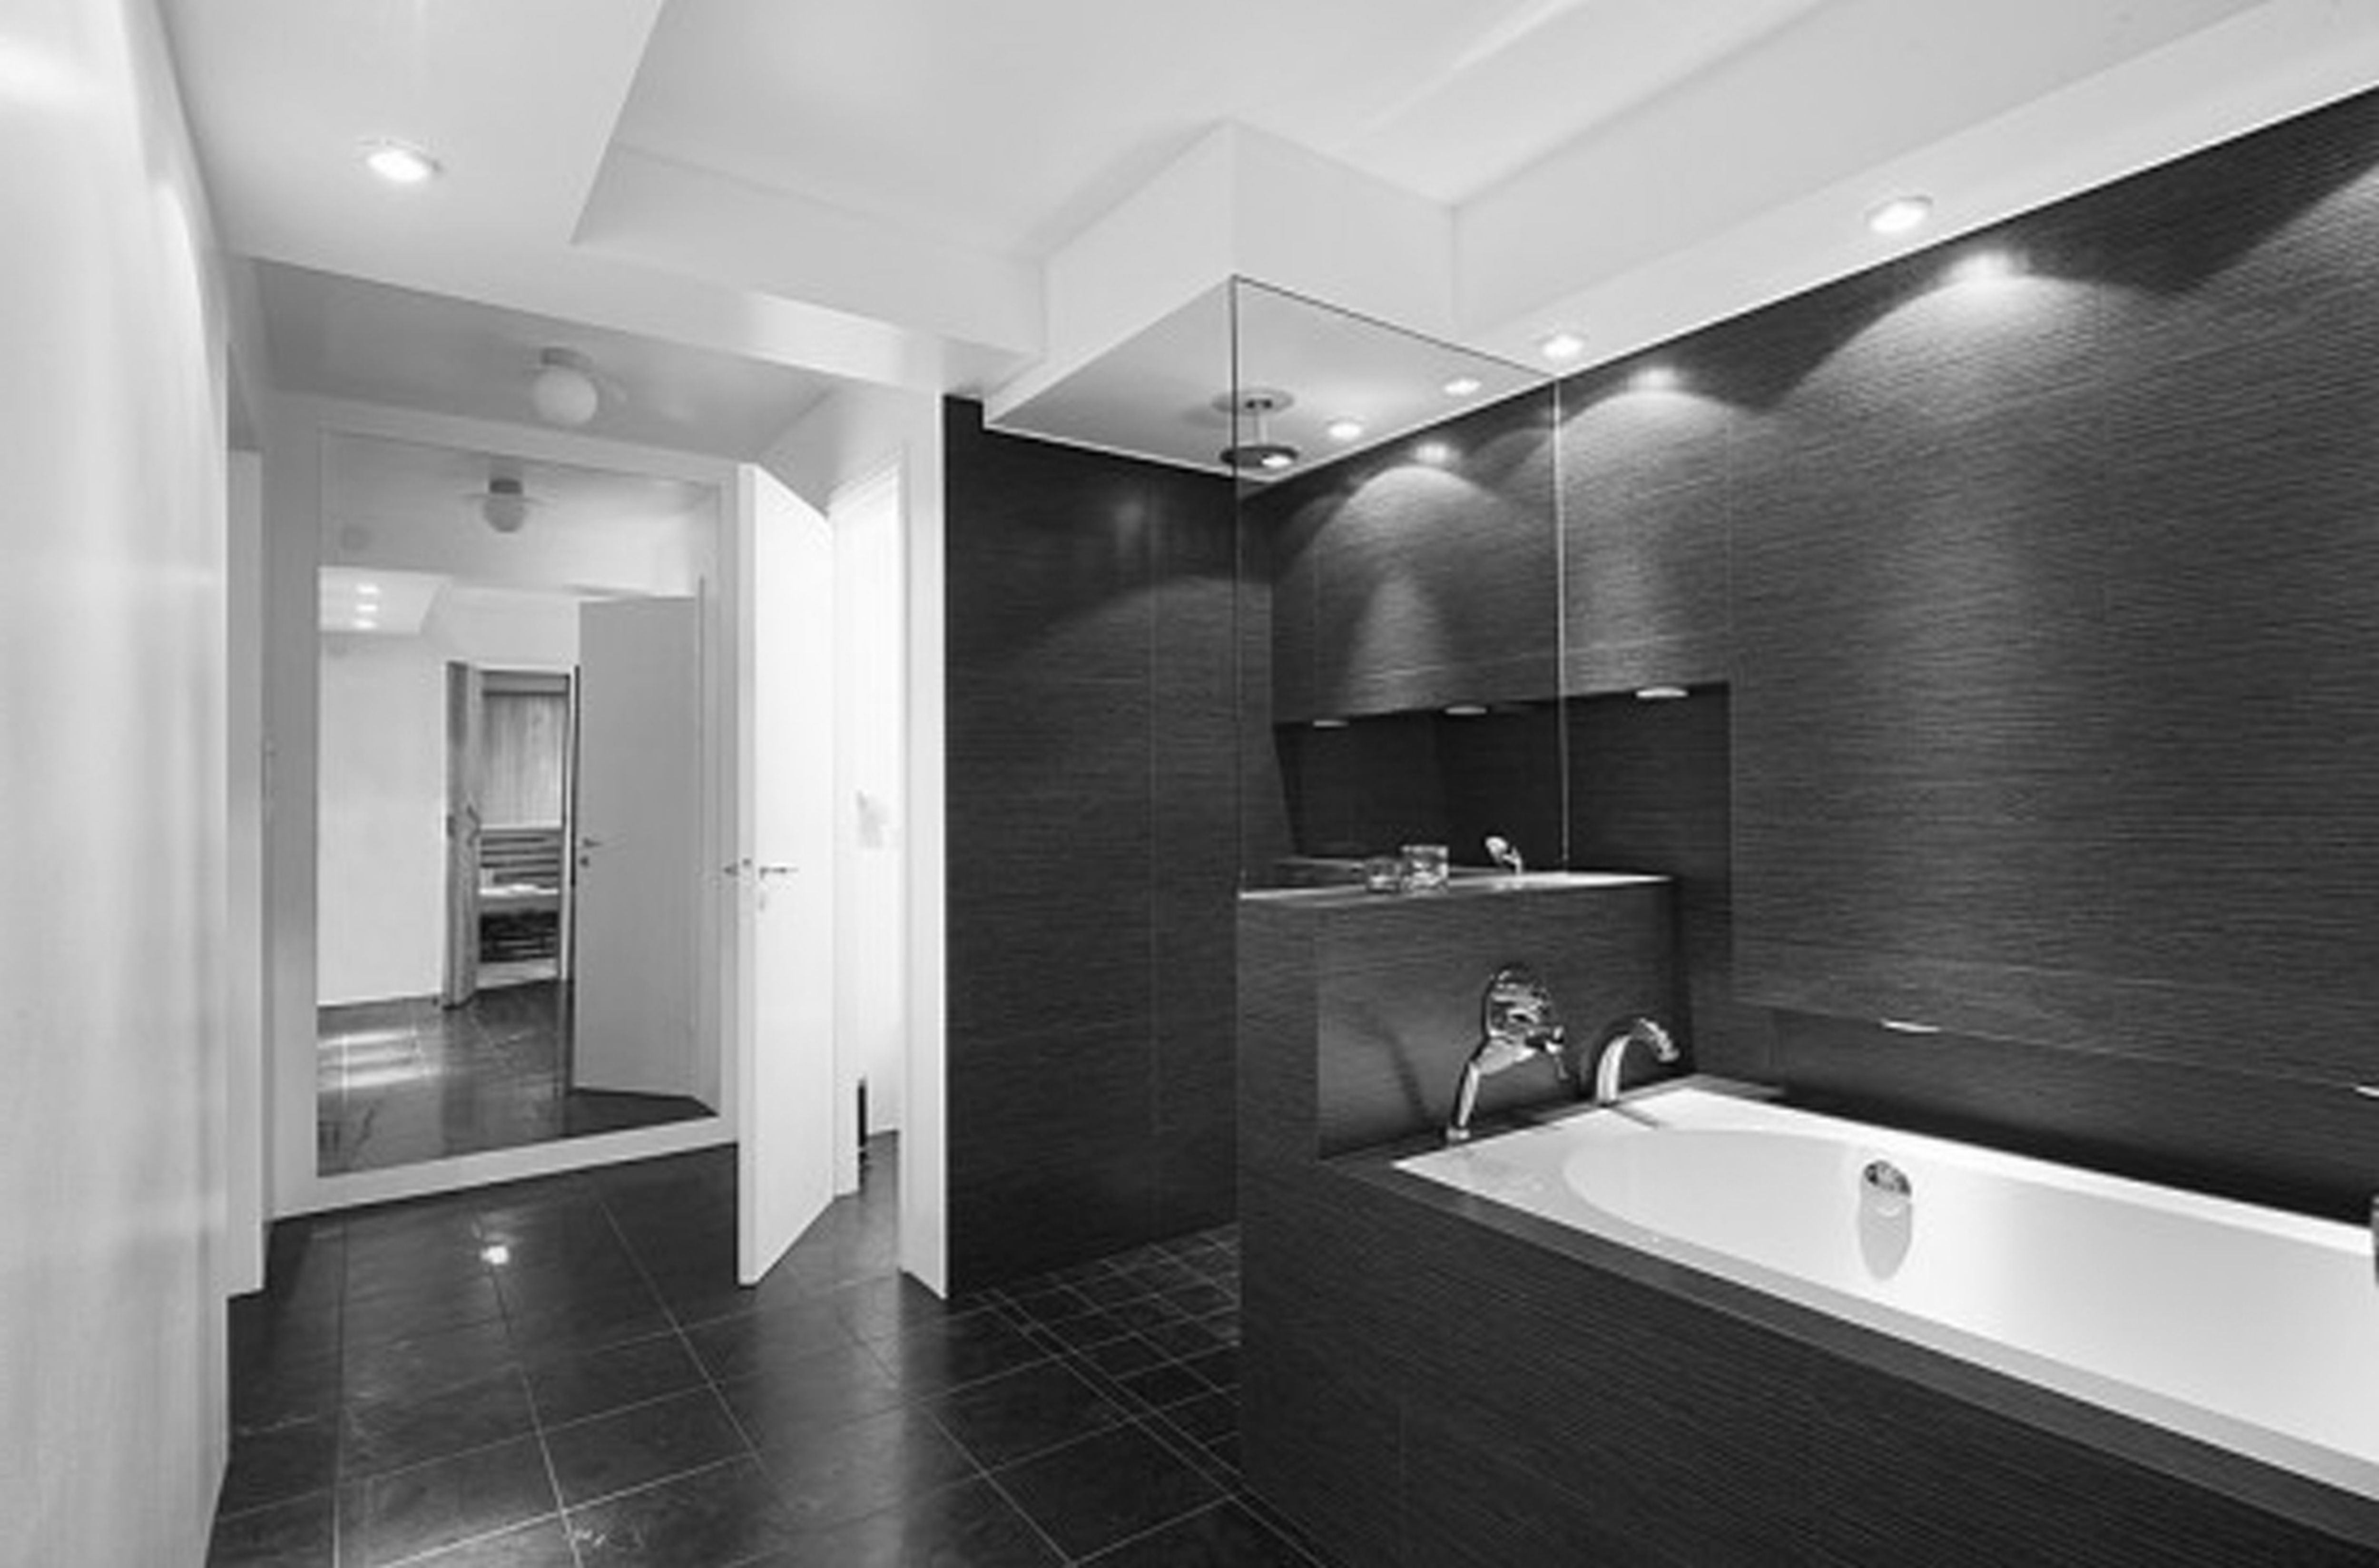 Green Bathroom Ideas Gray Black And White Bathrooms White: Mid Century Modern Bathrooms Grey Black